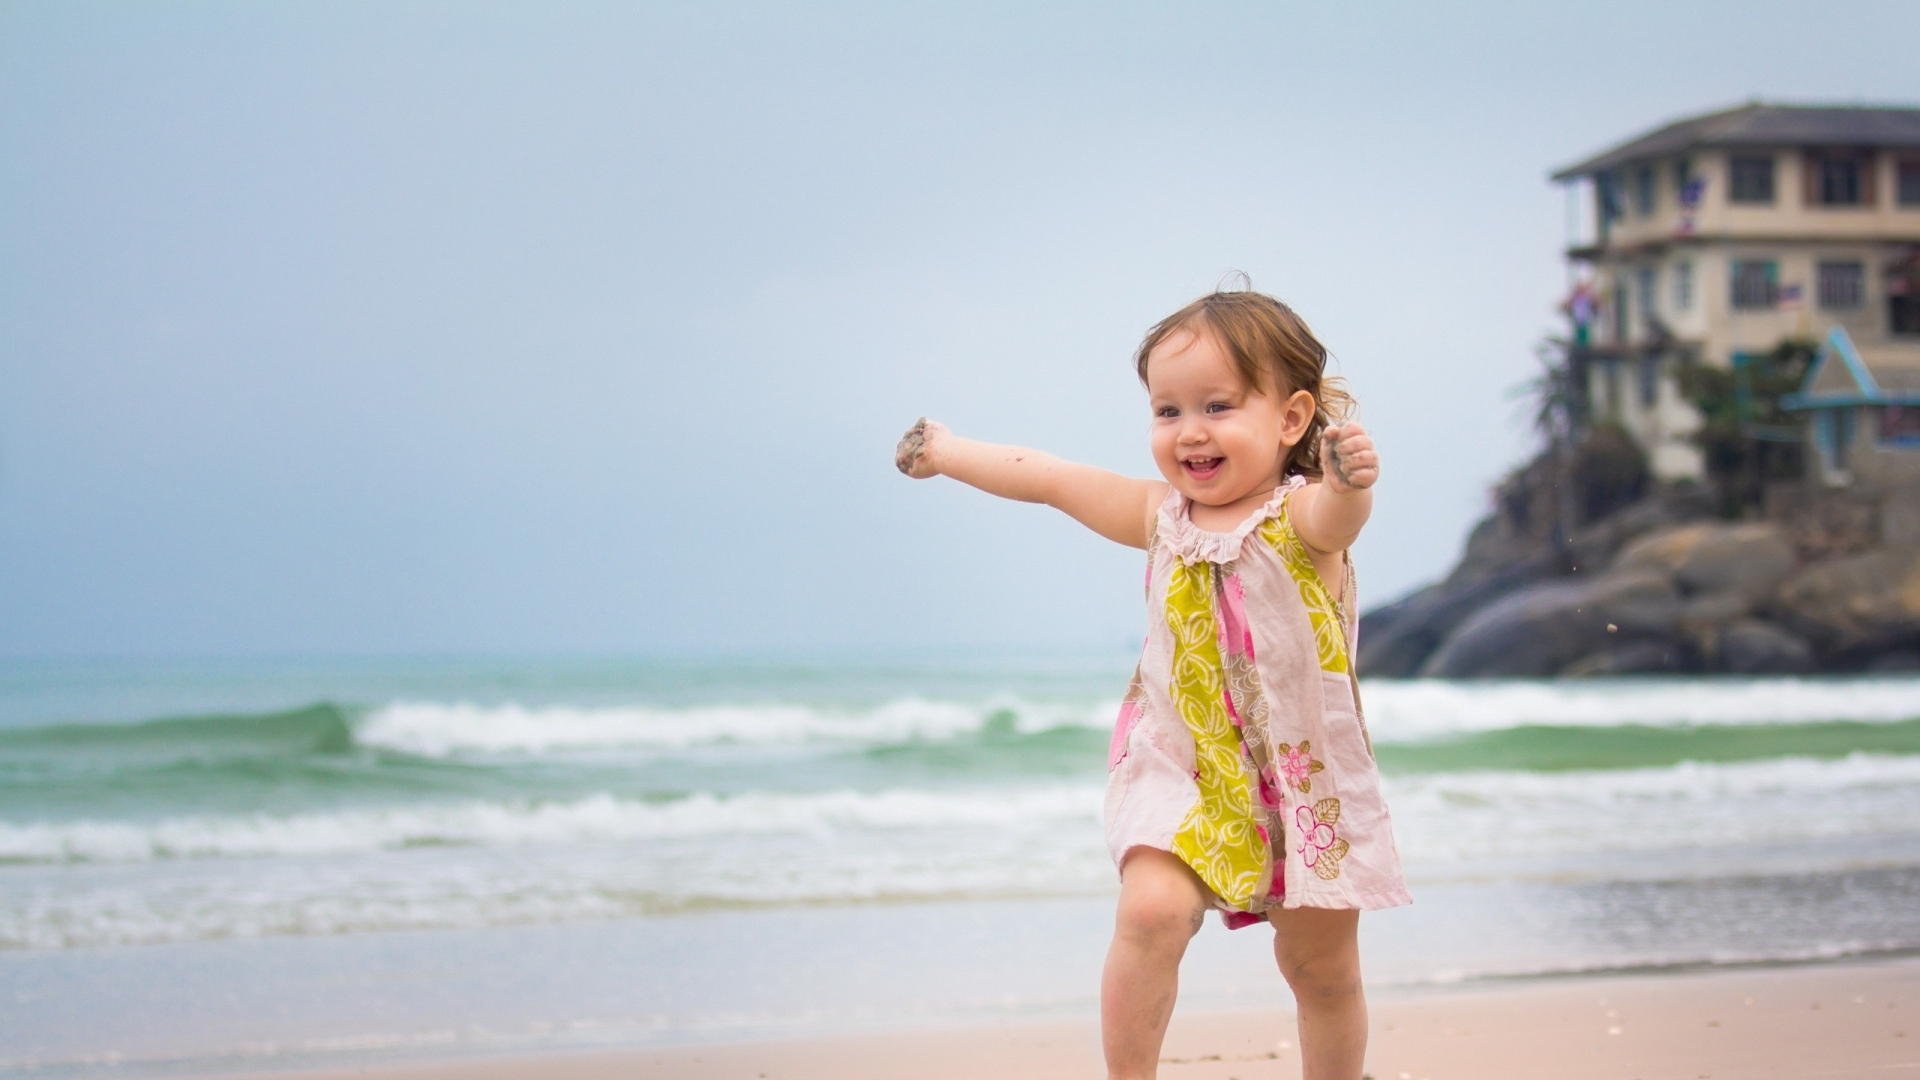 Download wallpaper 1920x1080 child beach sand sea escape child beach sand thecheapjerseys Images